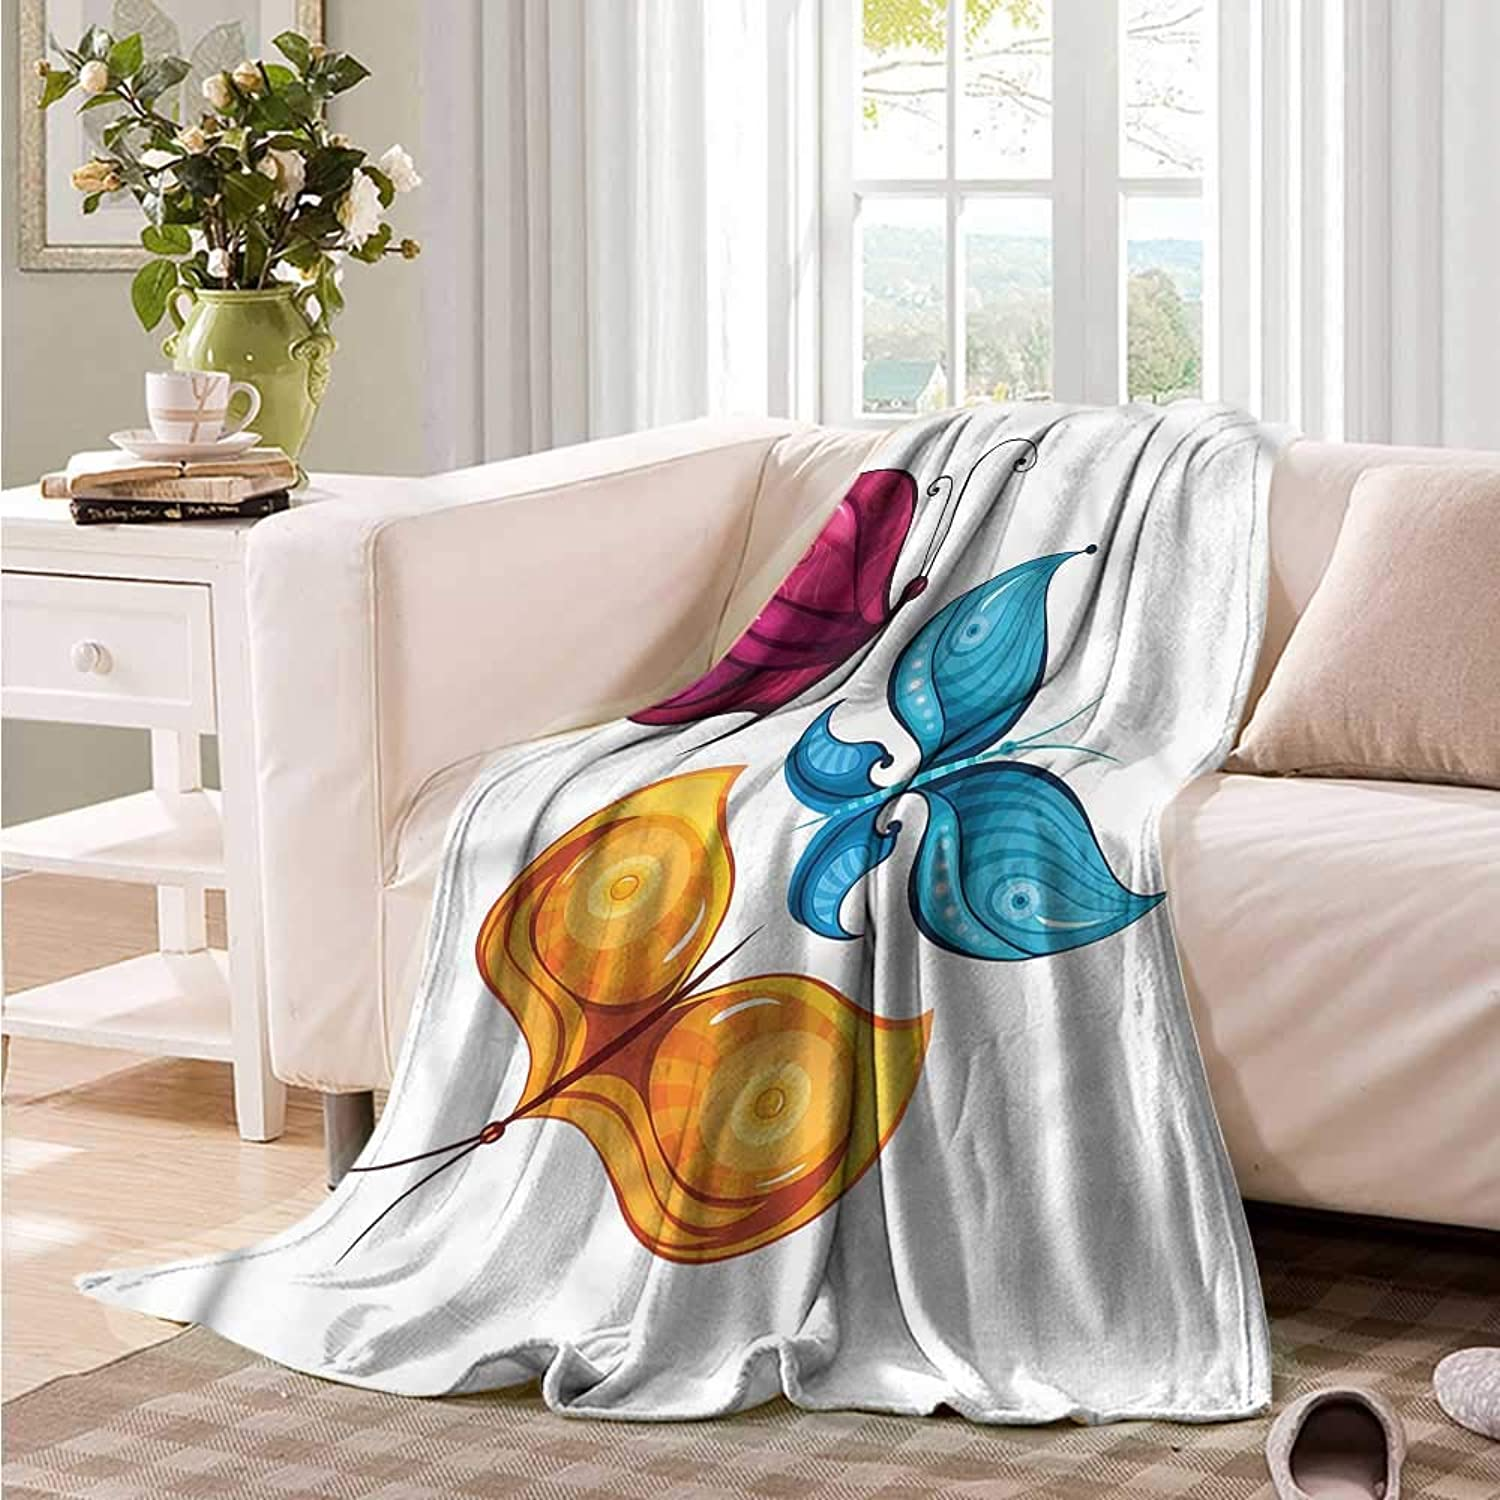 Oncegod Super Soft Blanket Butterfly Swallow Tail Wings Summer Blanket on Bed Sofa Bedding 60  W x 51  L